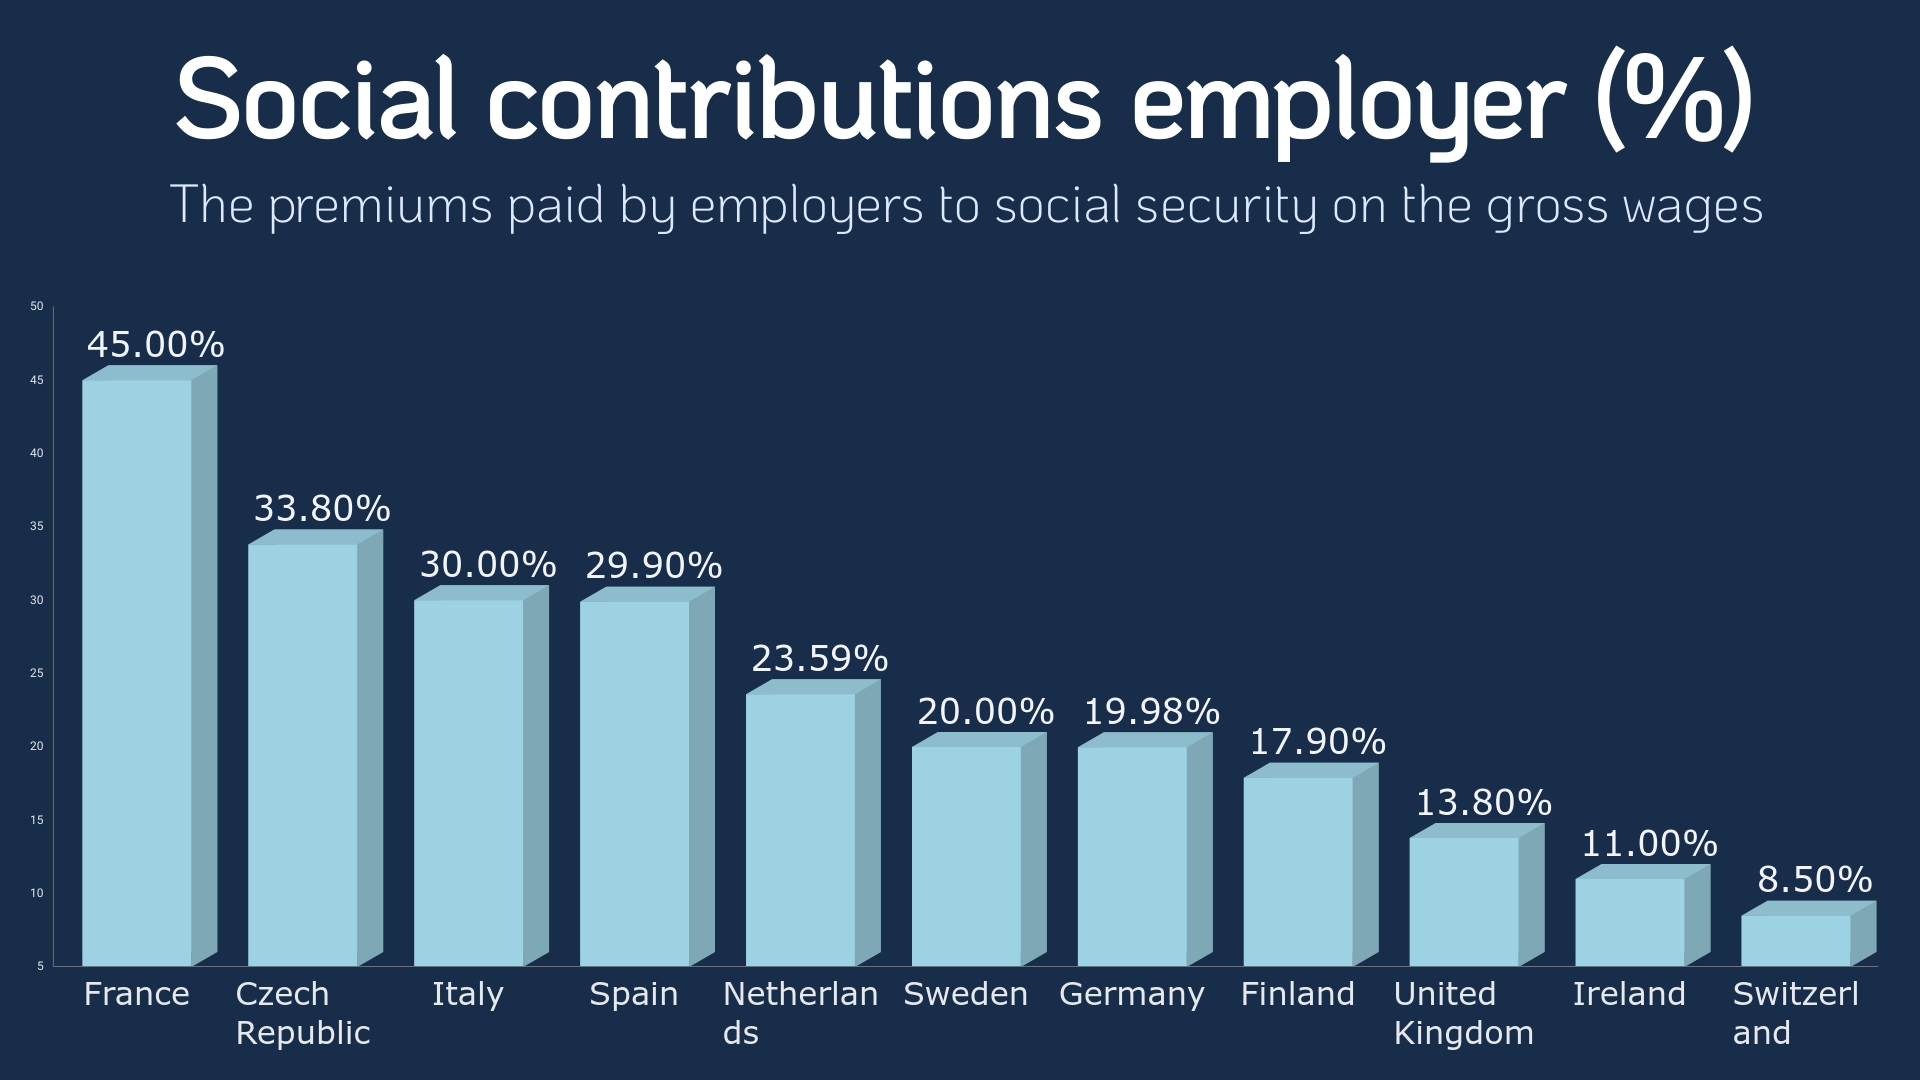 Social contributions Europe employer